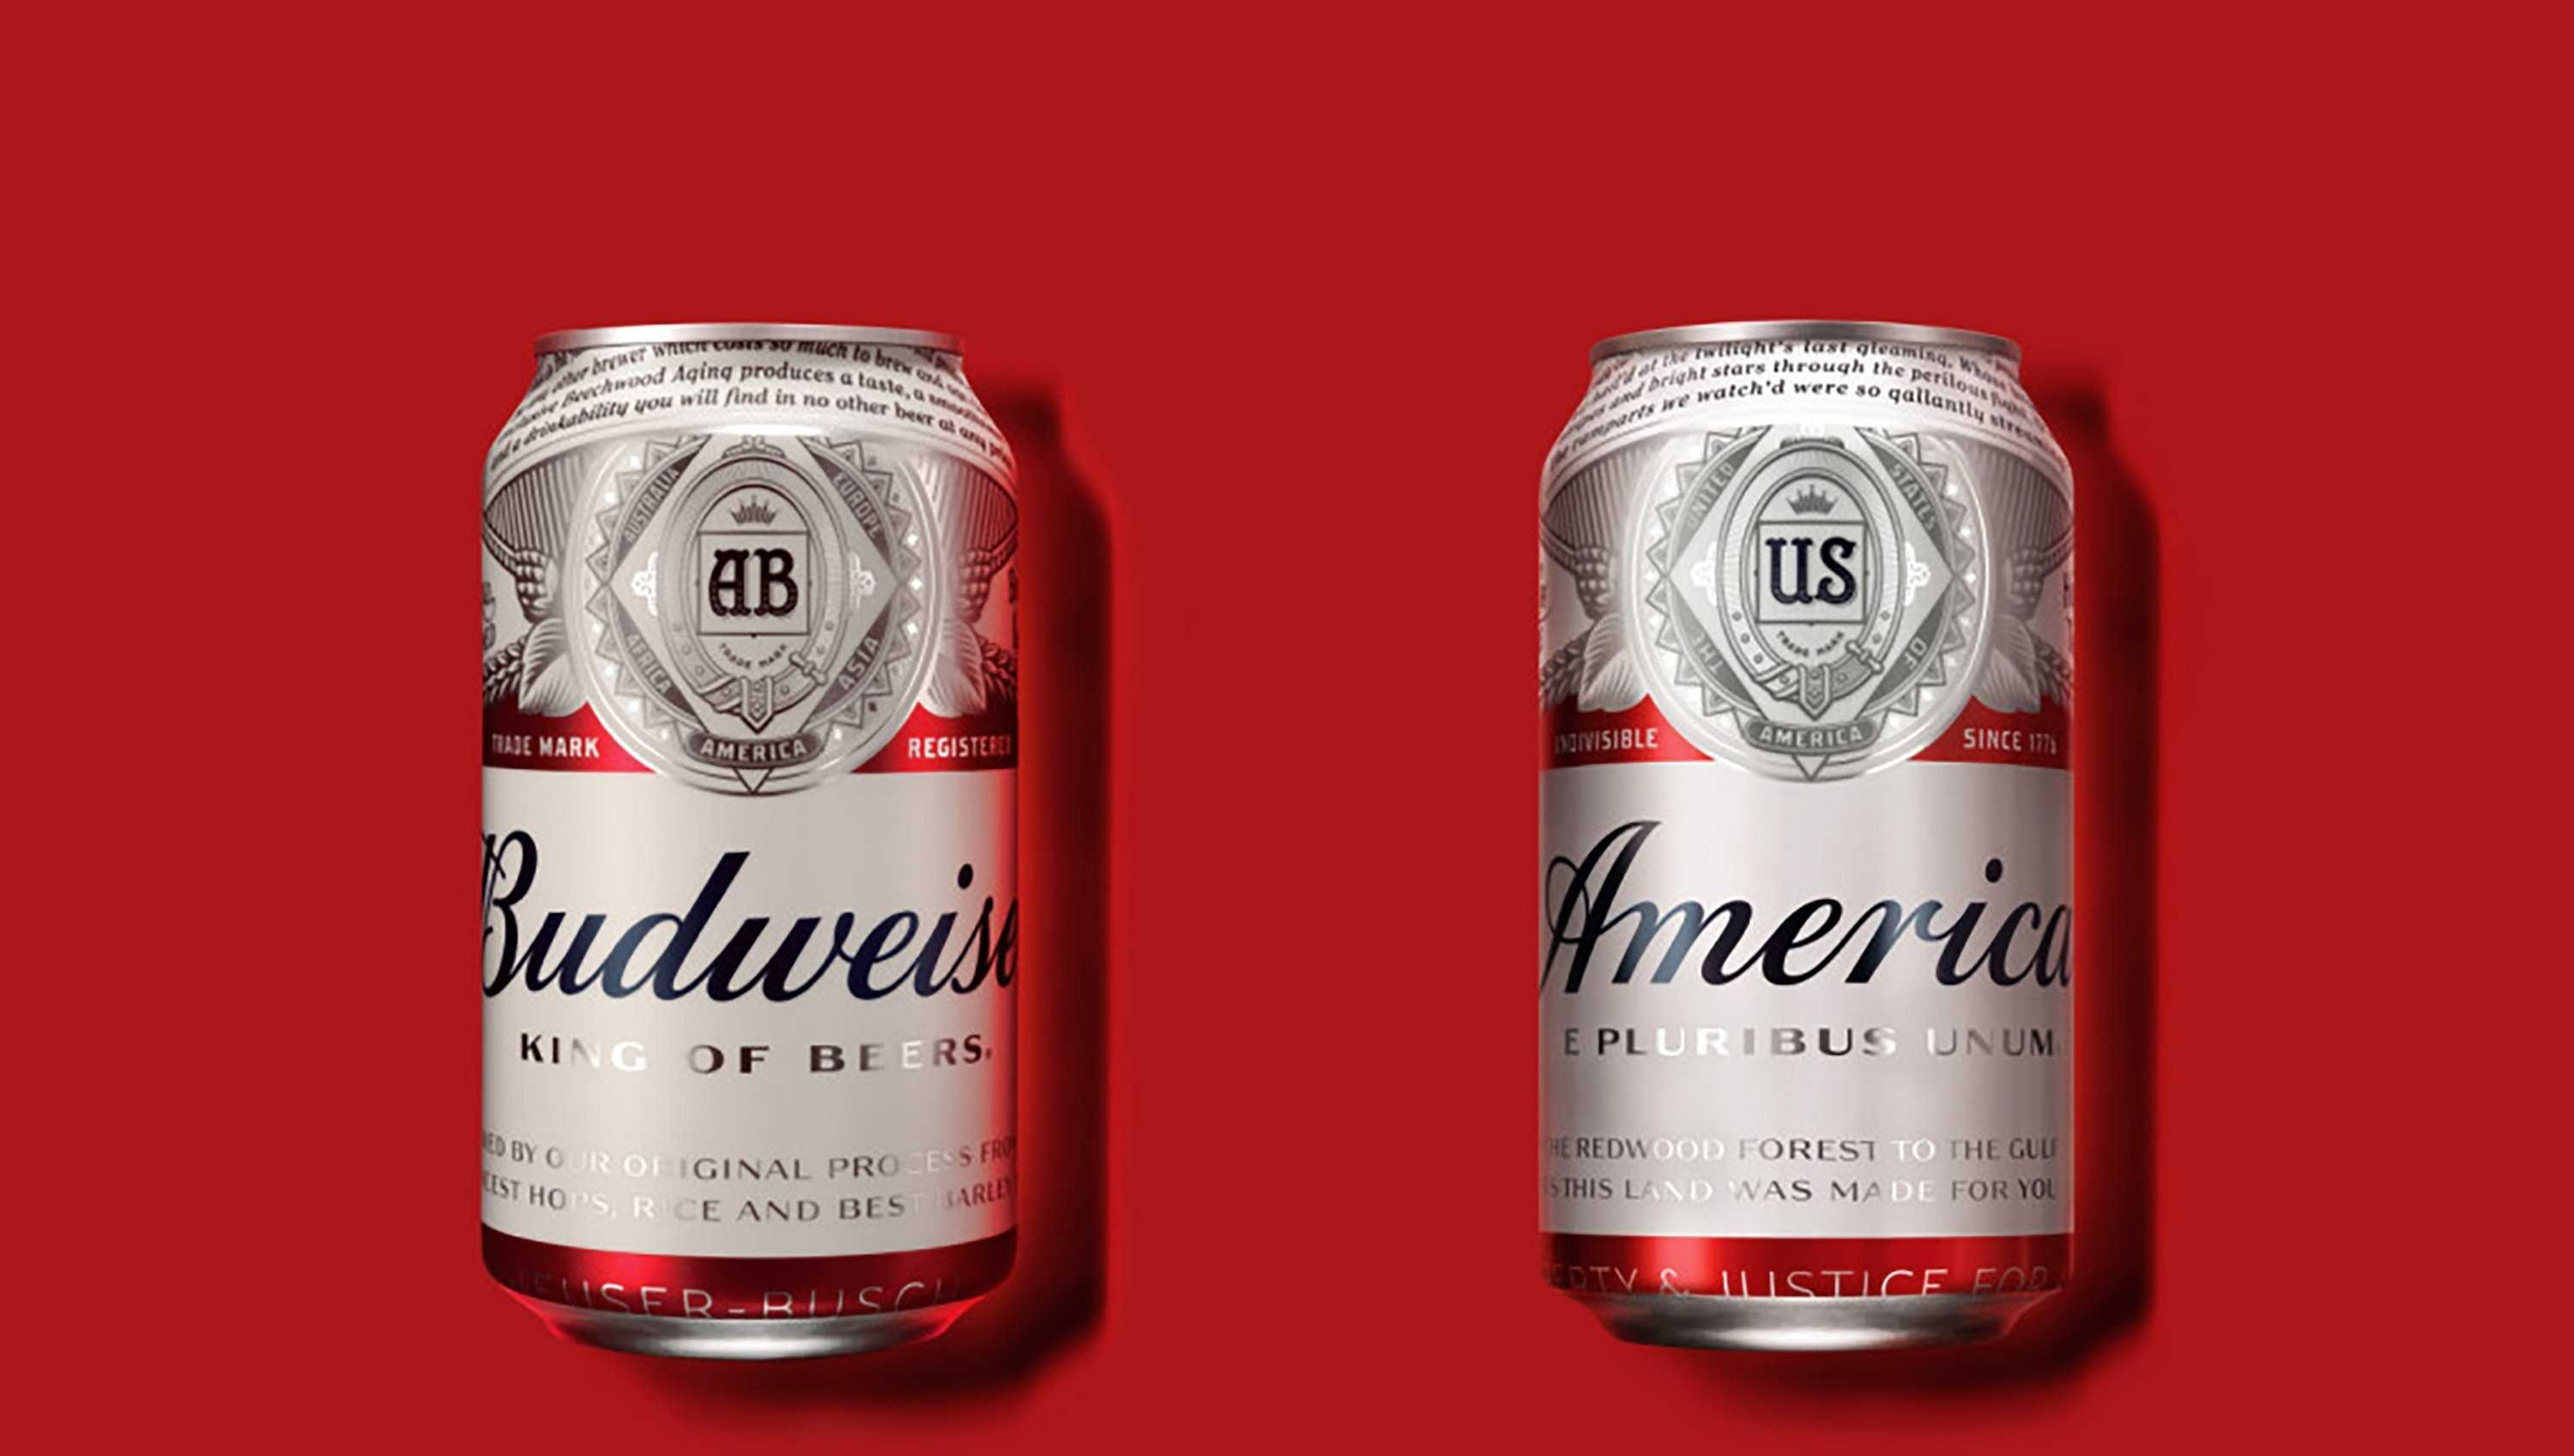 After 32 years, Budweiser's sponsorship of Team USA has gone flat. Anheuser-Busch InBev (BUD), which owns Budweiser, has decided not to re-up its partnership with the U.S. Olympic Committee, the company said Wednesday.